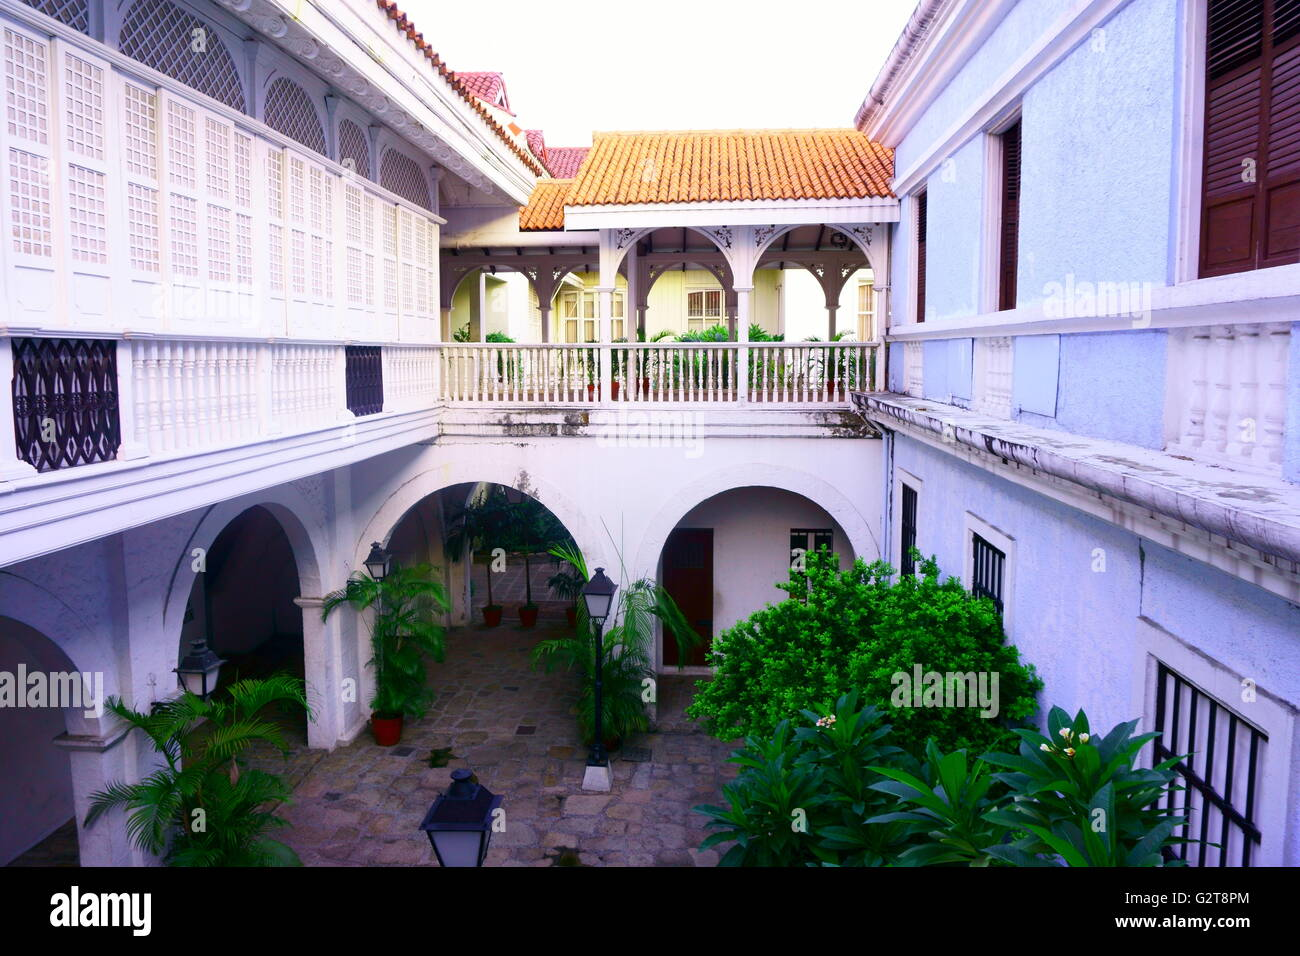 Amazing Architecture Of An Old House With Veranda